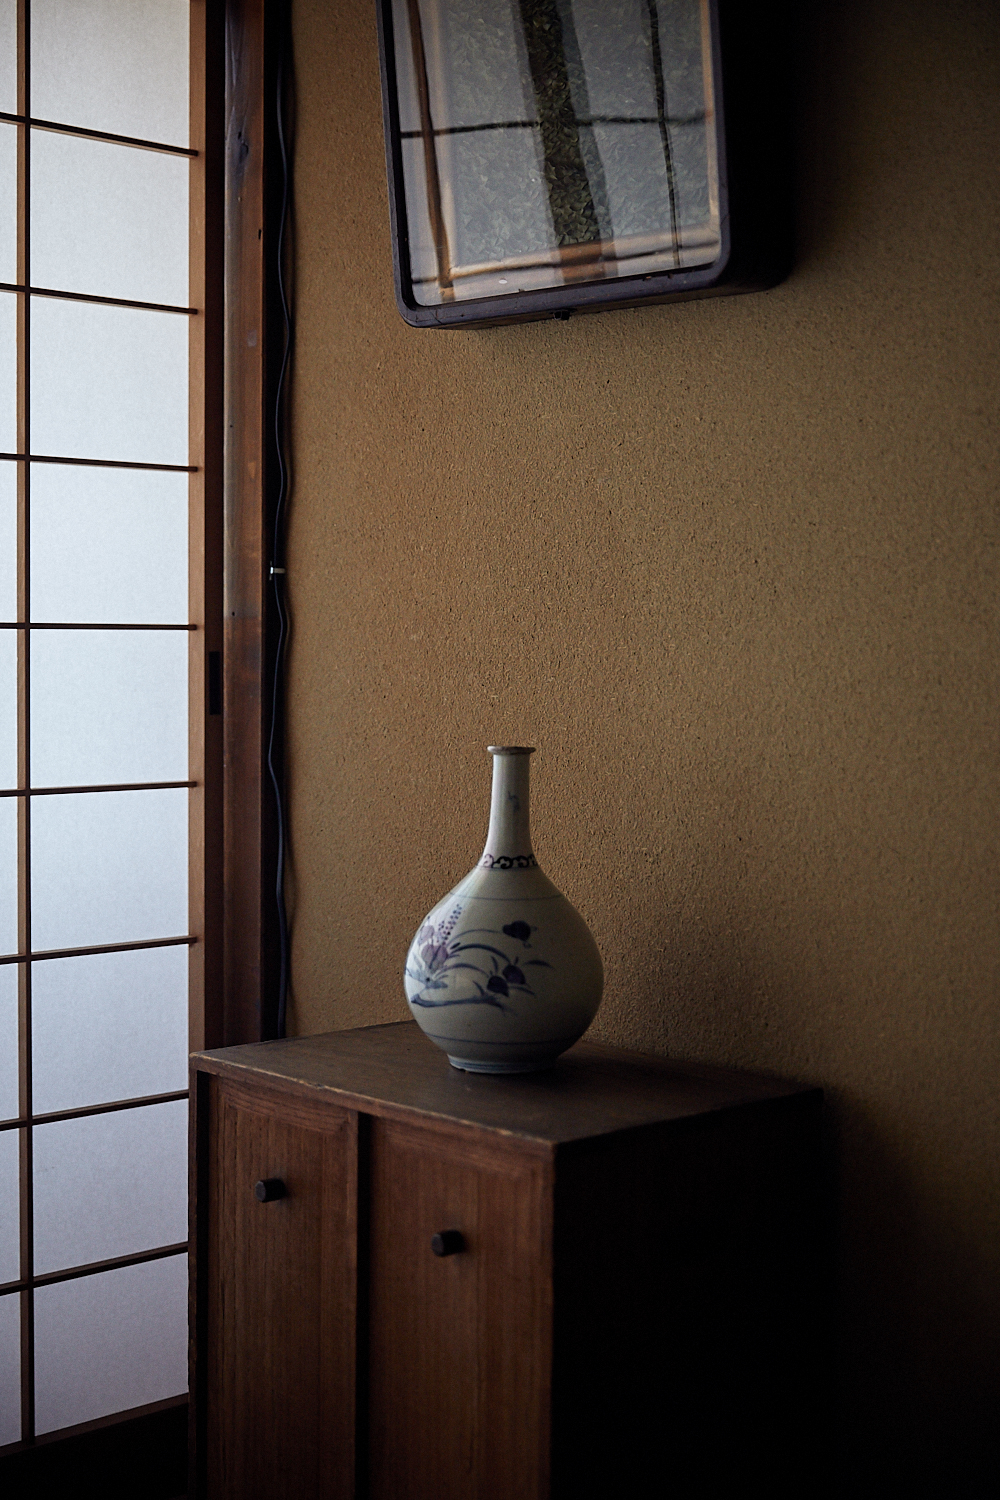 Machiya look best when decorated with items that share its style: simple, detailed, and finely made